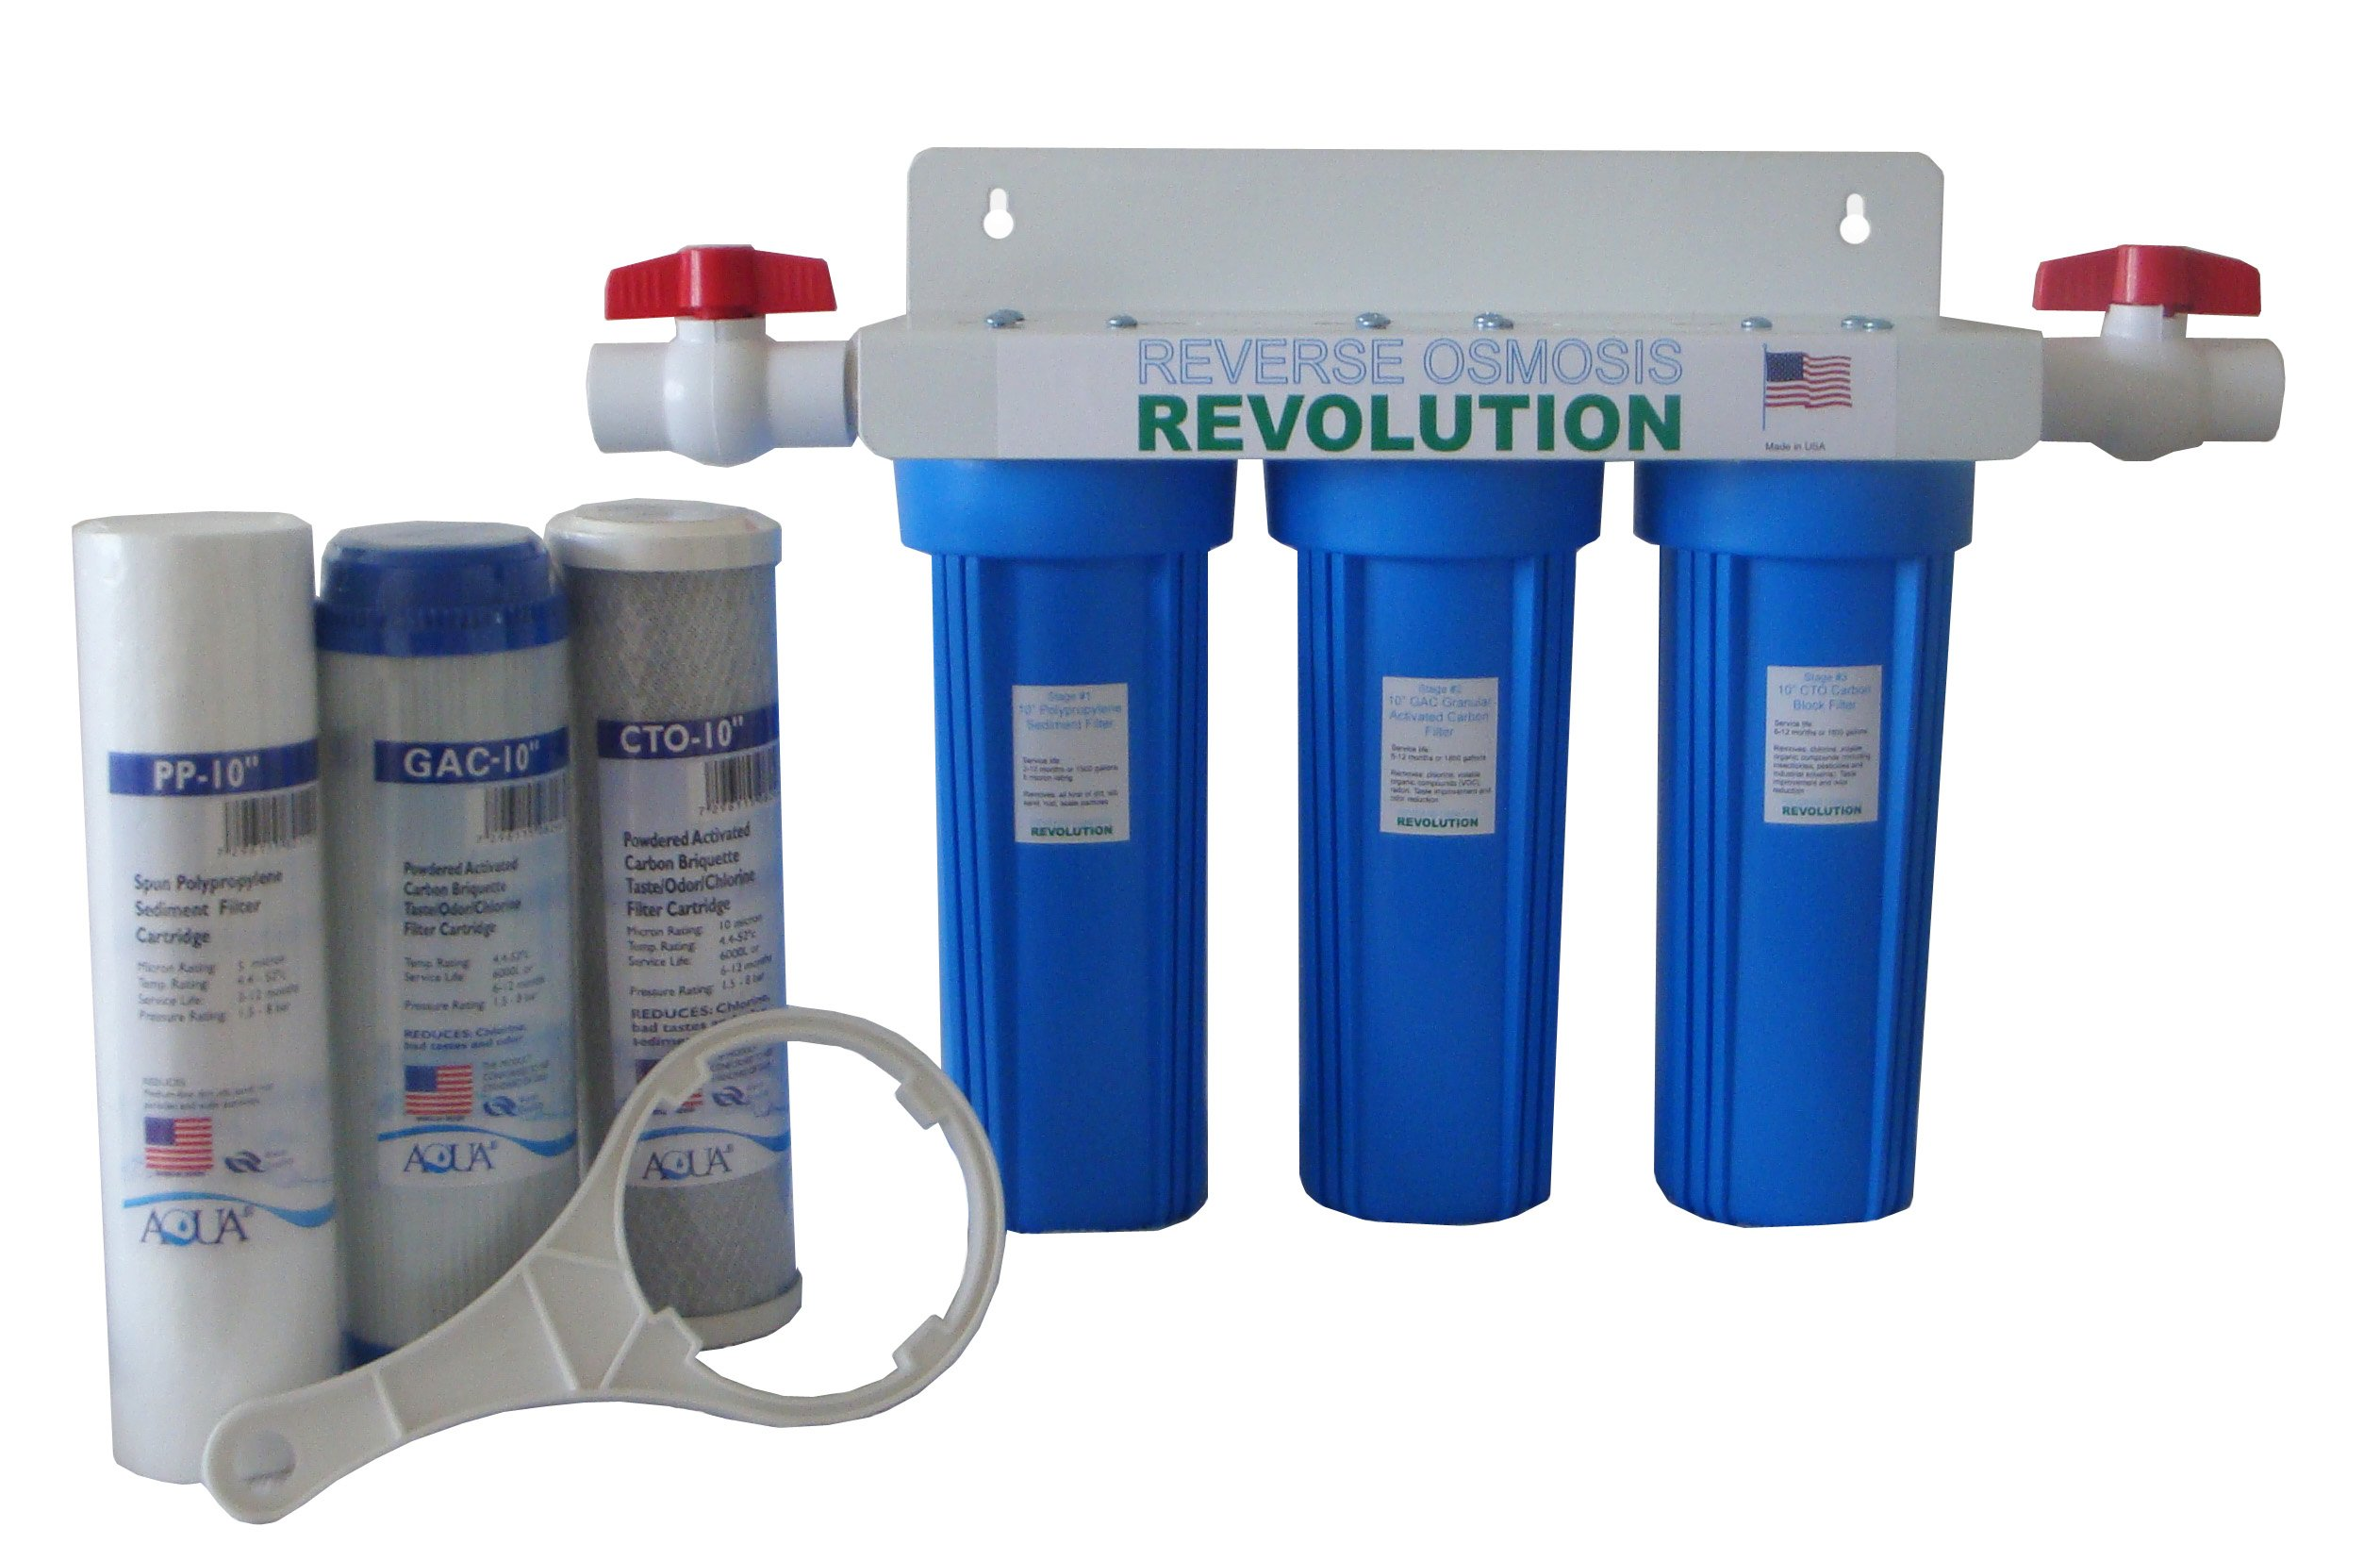 Reverse Osmosis Revolution Whole House 3-Stage Water Filtration System, 3/4'' port with 2 valves and extra 3 filters set